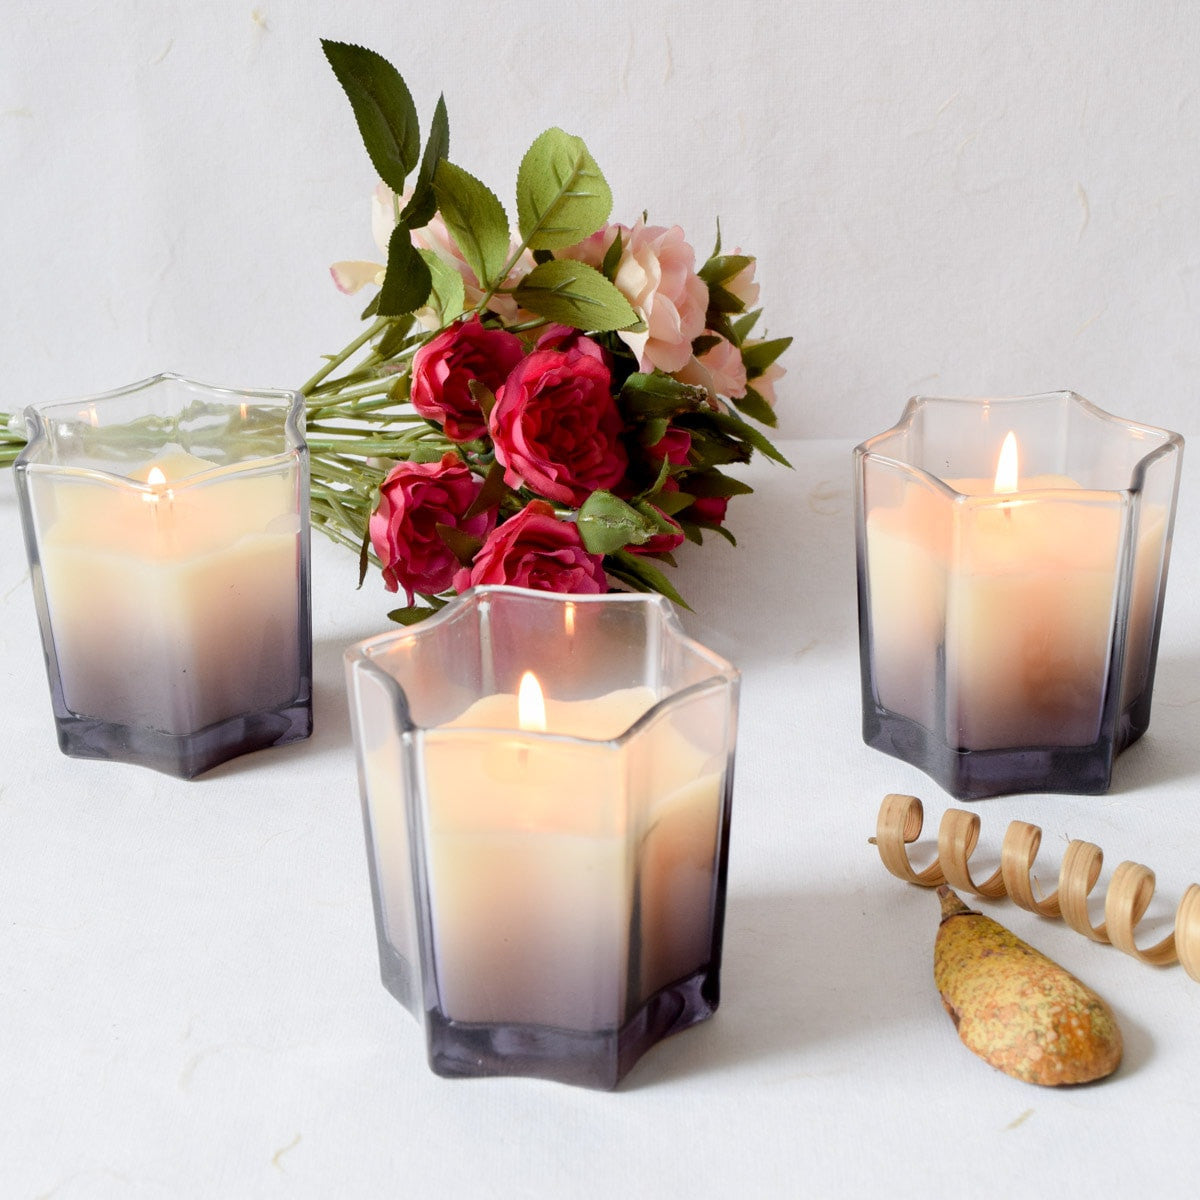 Starburst Smoky Glass Candles (Set of 3)